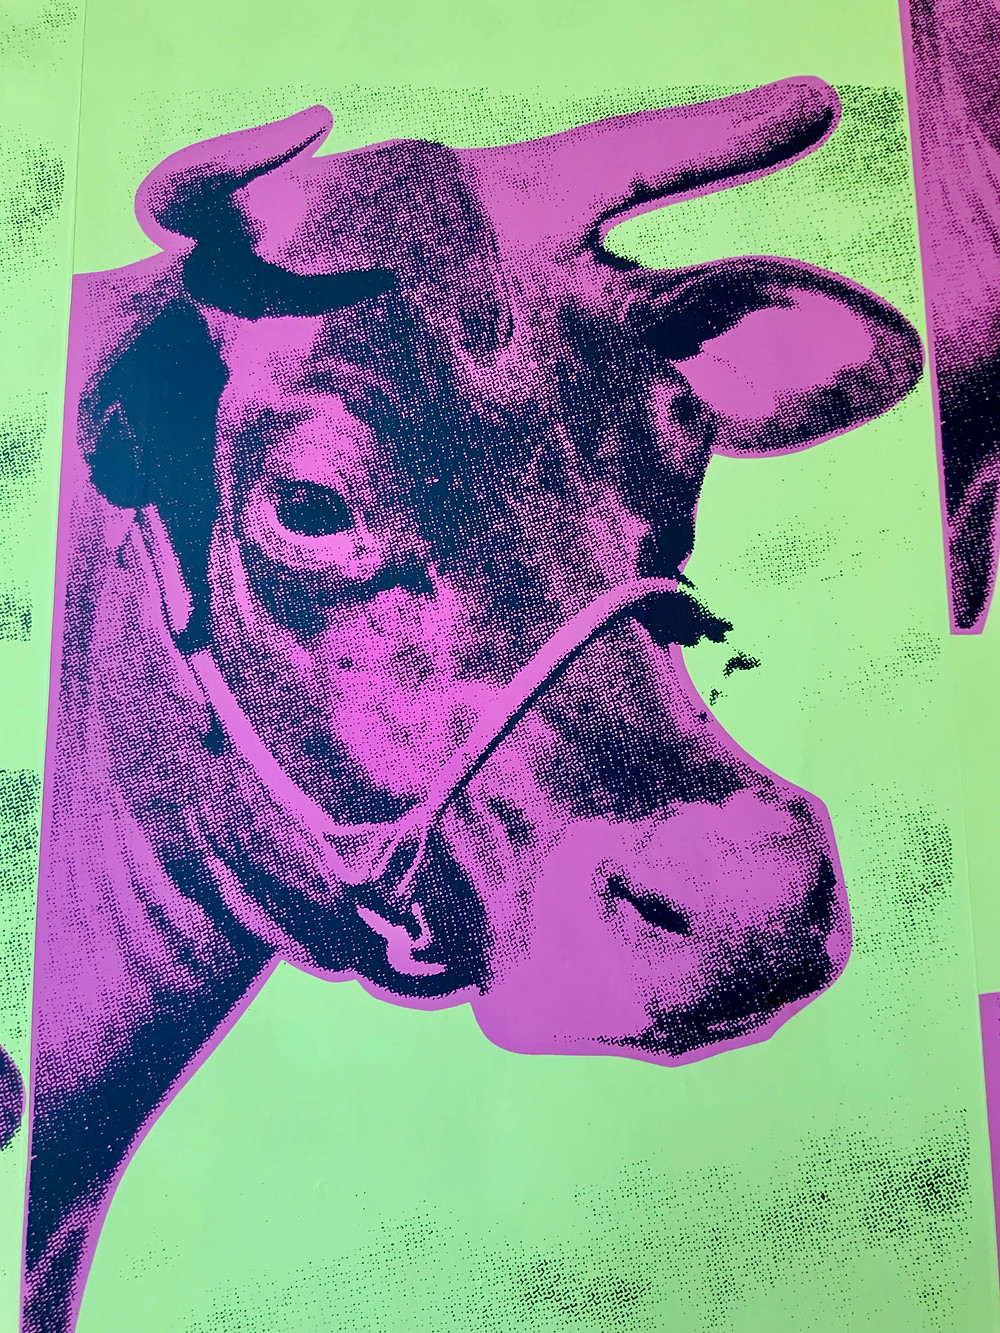 the cow wallpaper at the entrance of the Andy Warhol Museum in Pittsburgh